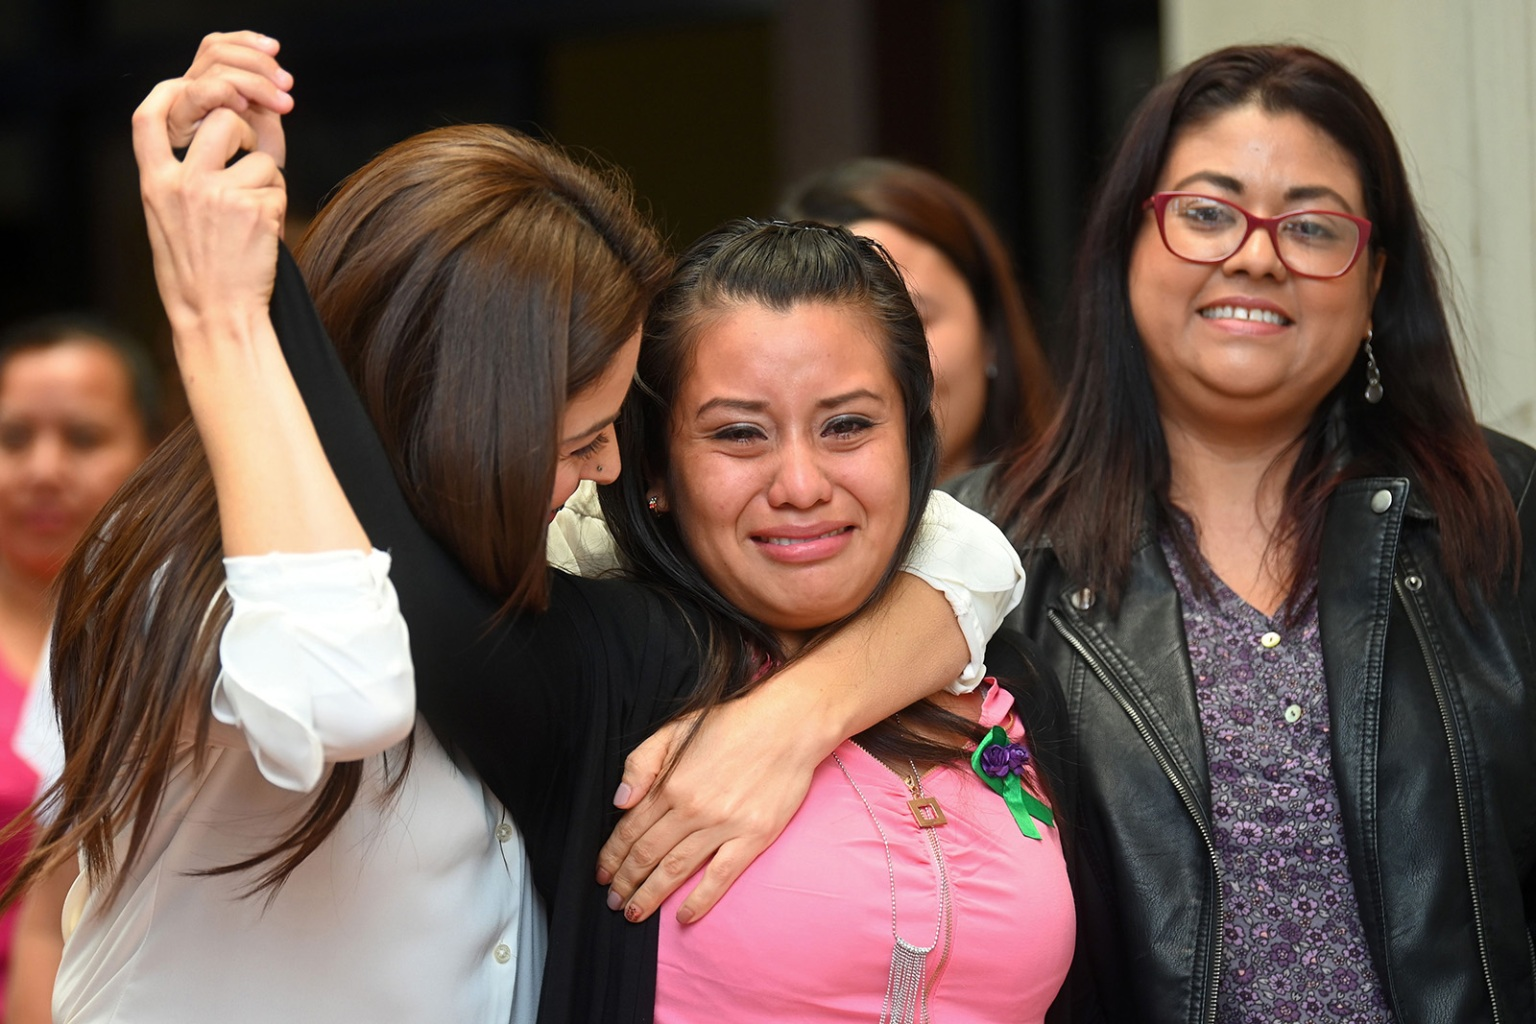 Salvadorean rape victim Evelyn Hernandez celebrates with her lawyers after being cleared of murder in San Salvador on Aug. 19. Hernandez gave birth to a stillborn baby at home in 2016 and was accused of murder in El Salvador, which has has an extremely strict ban on abortion. OSCAR RIVERA/AFP/Getty Images